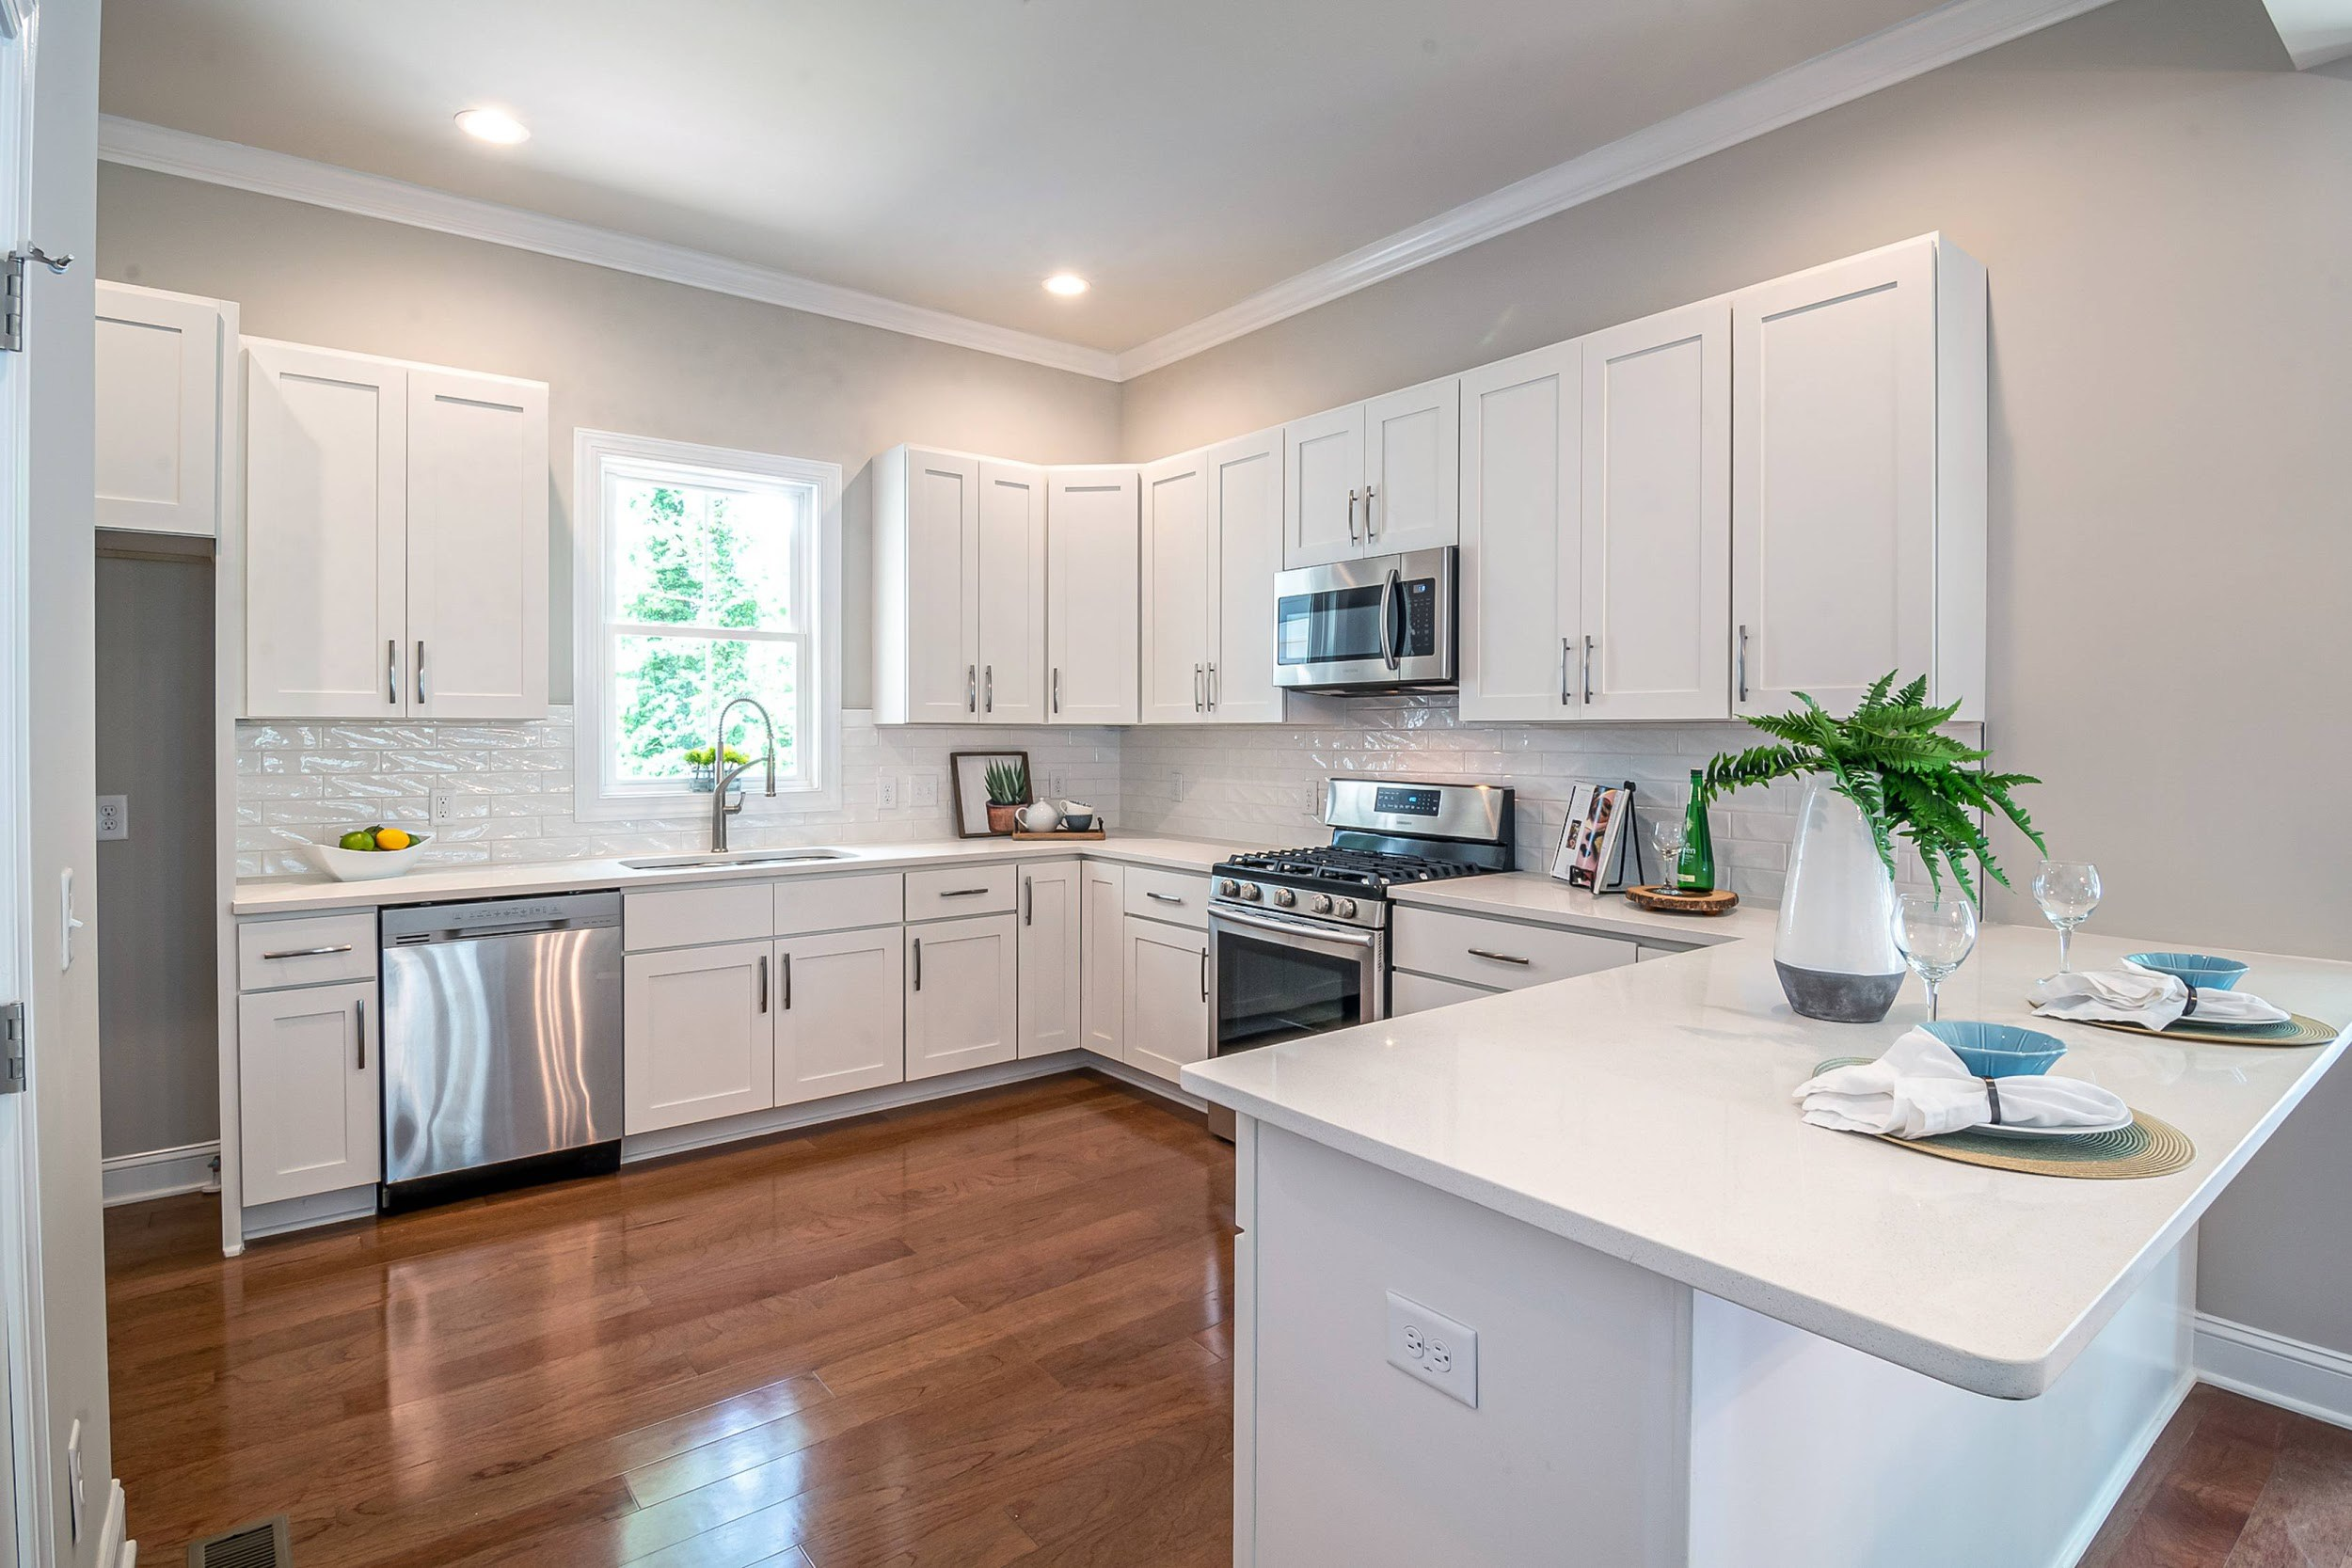 29. Cool White And Green Countertop Design